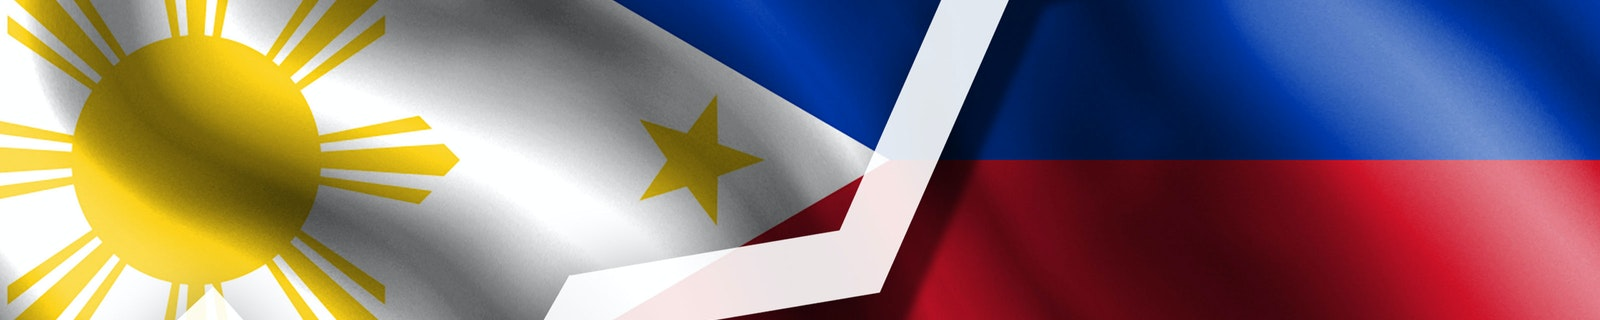 White arrow pointing up against the background of the flag of Philippines